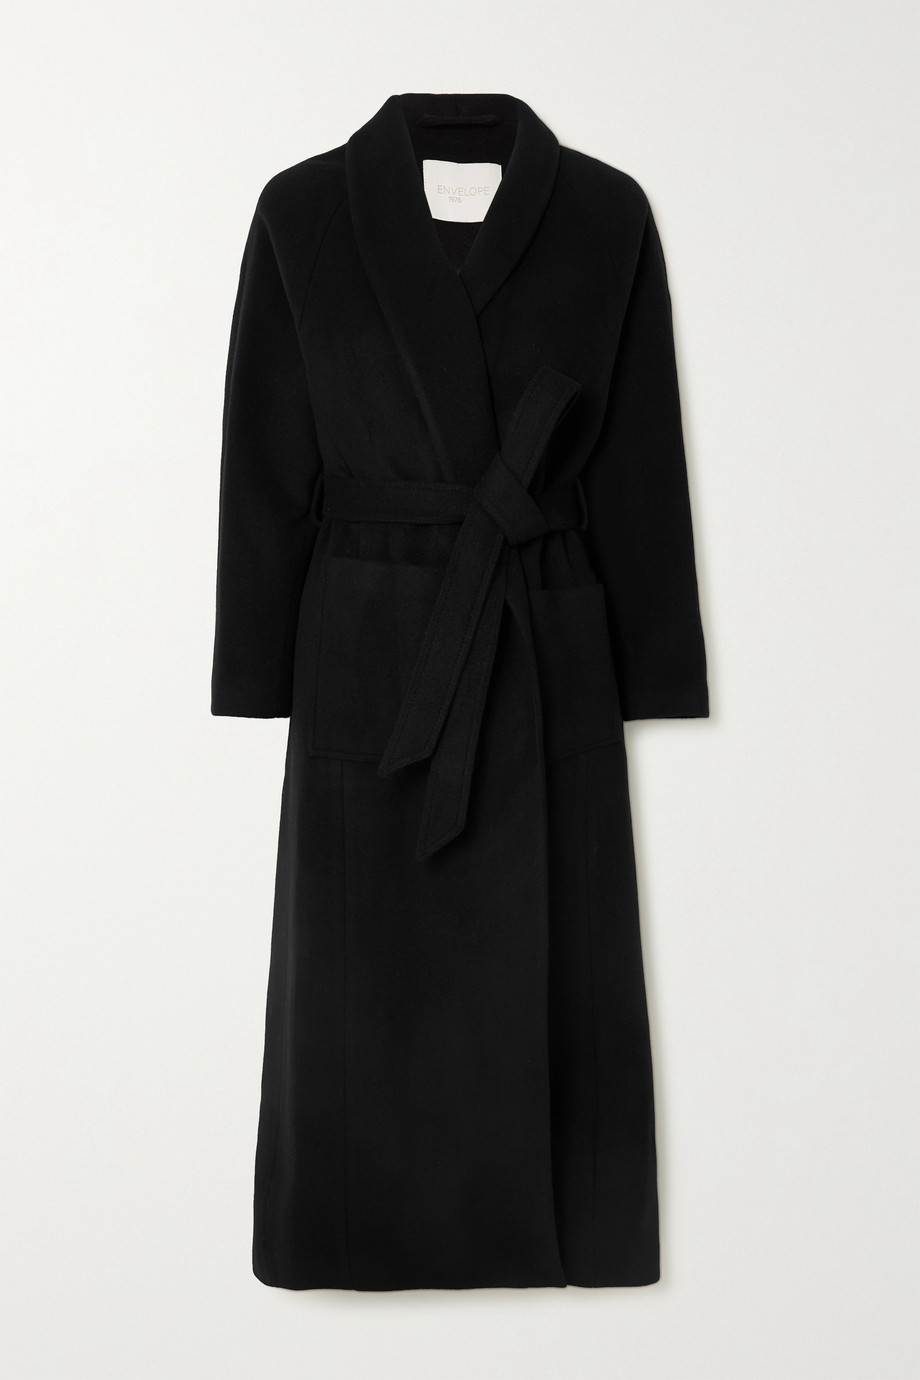 ENVELOPE1976 + NET SUSTAIN Houston belted wool coat